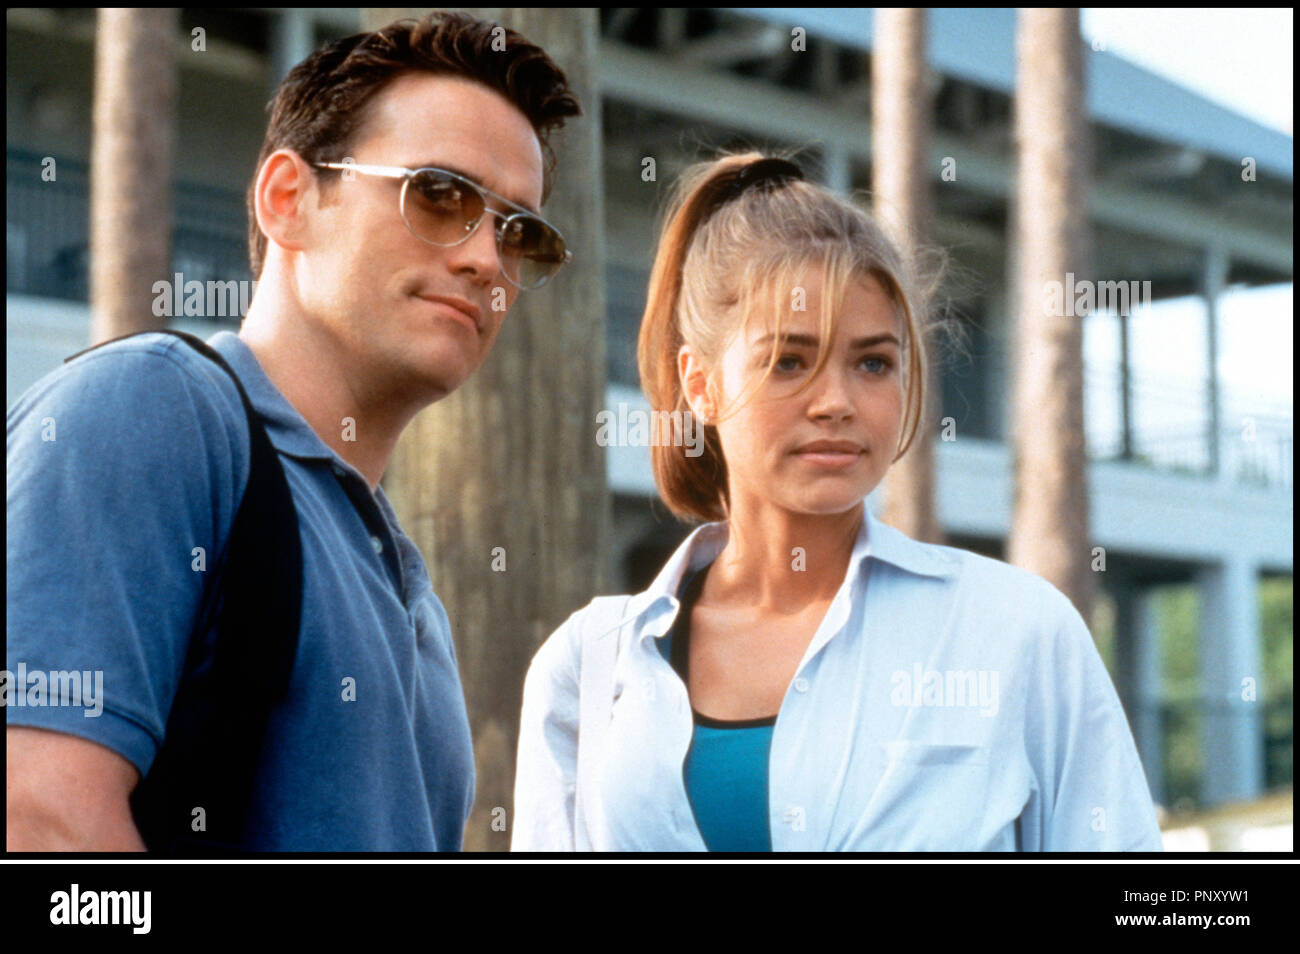 Prod DB © Mandalay / DR SEXCRIMES (WILD THINGS) de John Mc Naughton 1998 USA avec Matt Dillon et Denise Richards - Stock Image